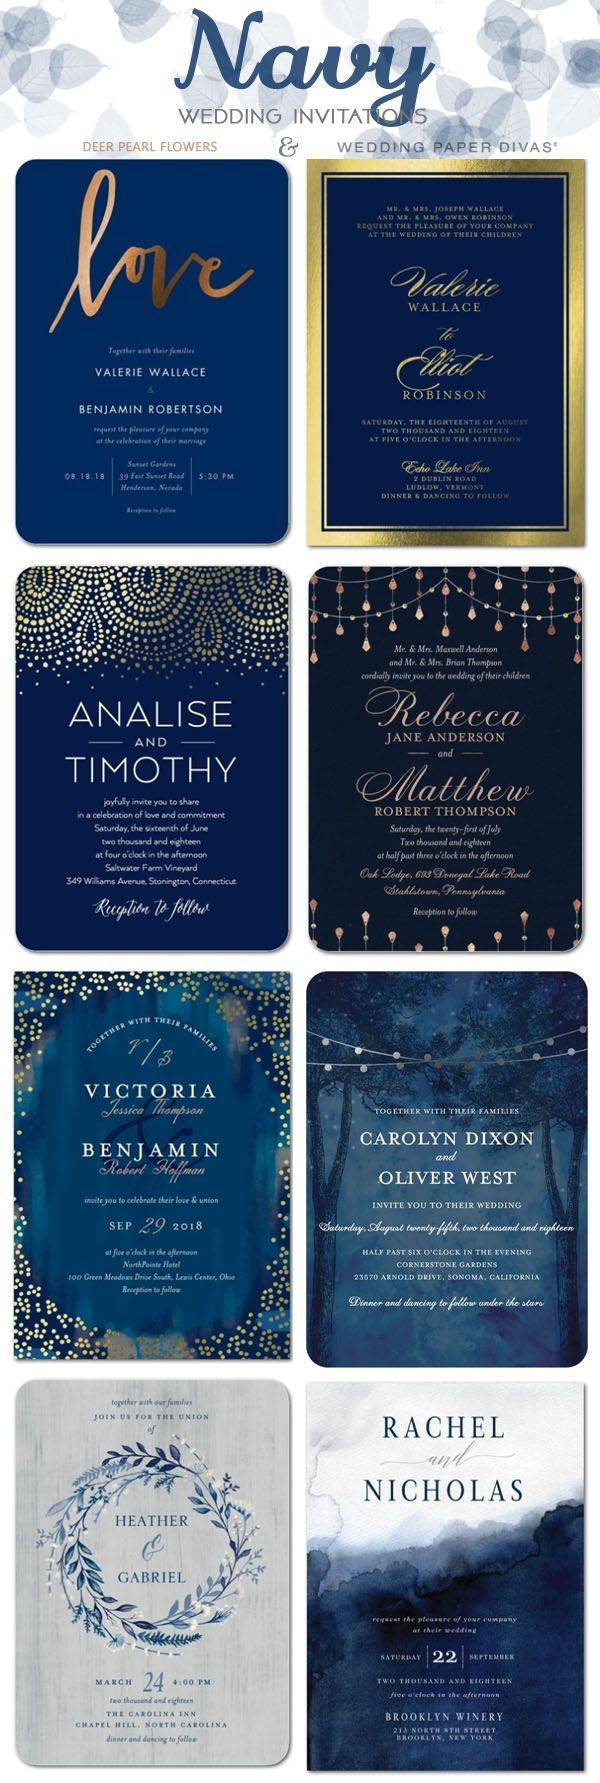 navy blue and kelly green wedding invitations%0A Navy blue wedding color ideas  navy blue wedding invitations   http   www